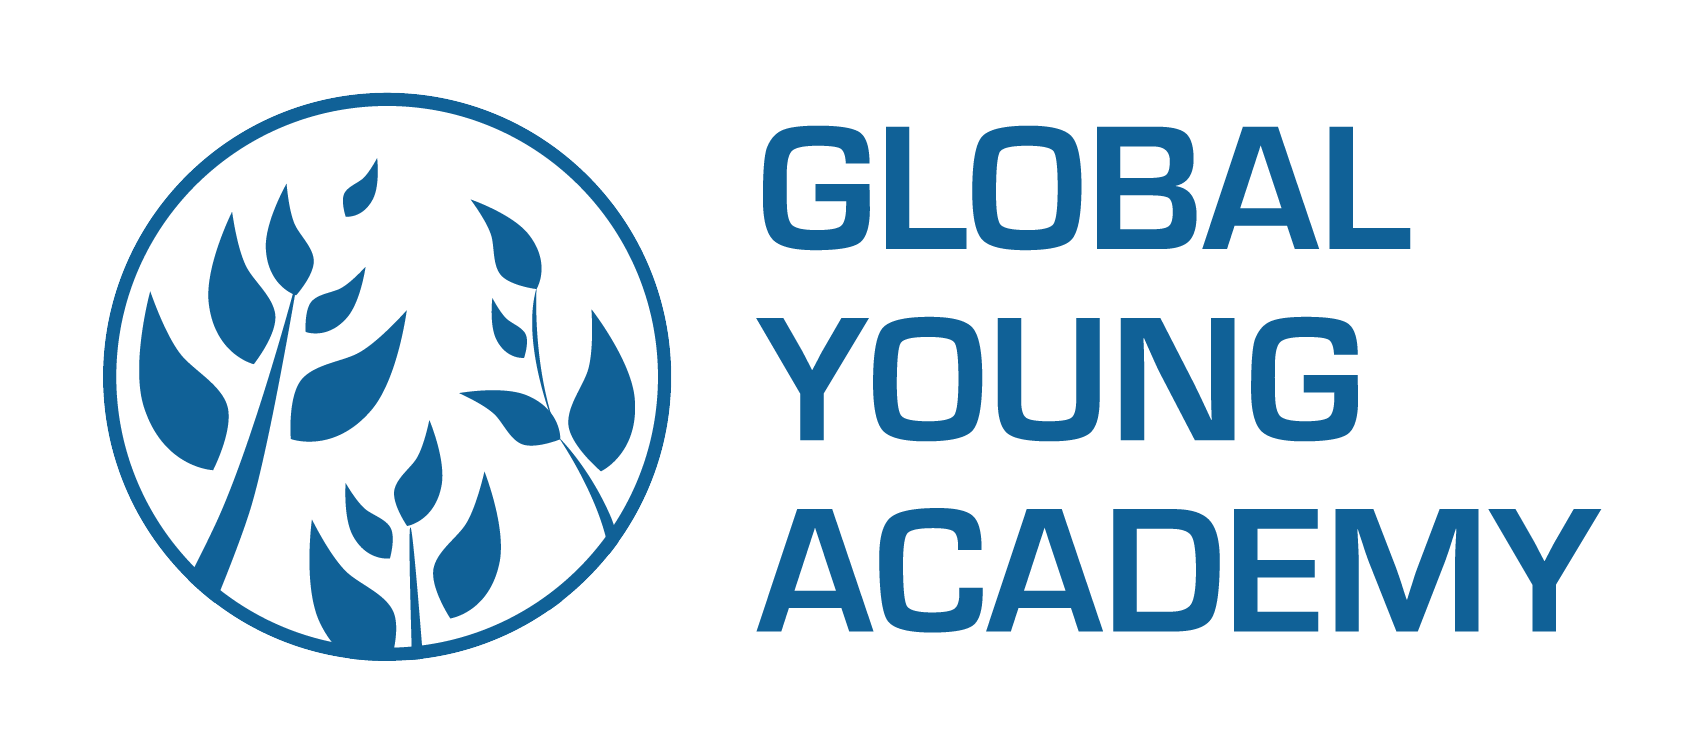 Assoc. Prof. Dr Mohd Hafiz Selected for Membership in Global Young Academy